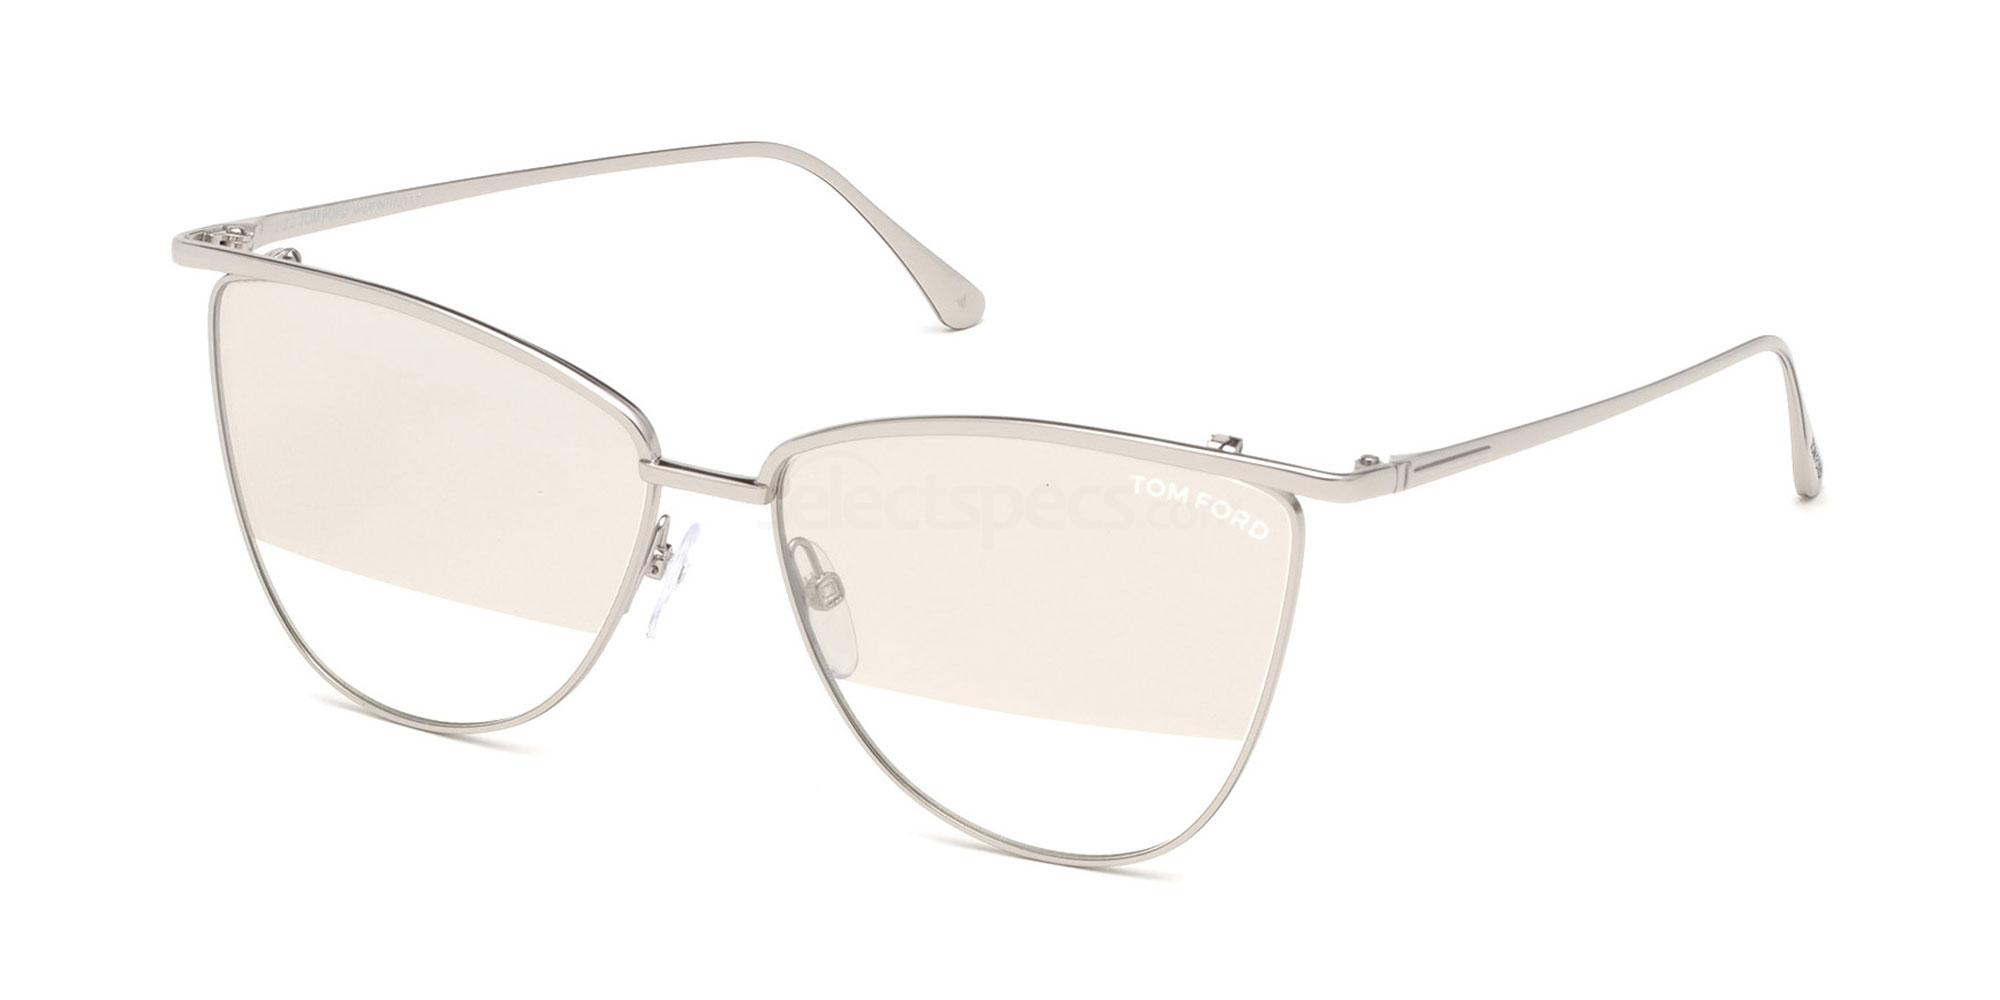 16B FT0684 Sunglasses, Tom Ford